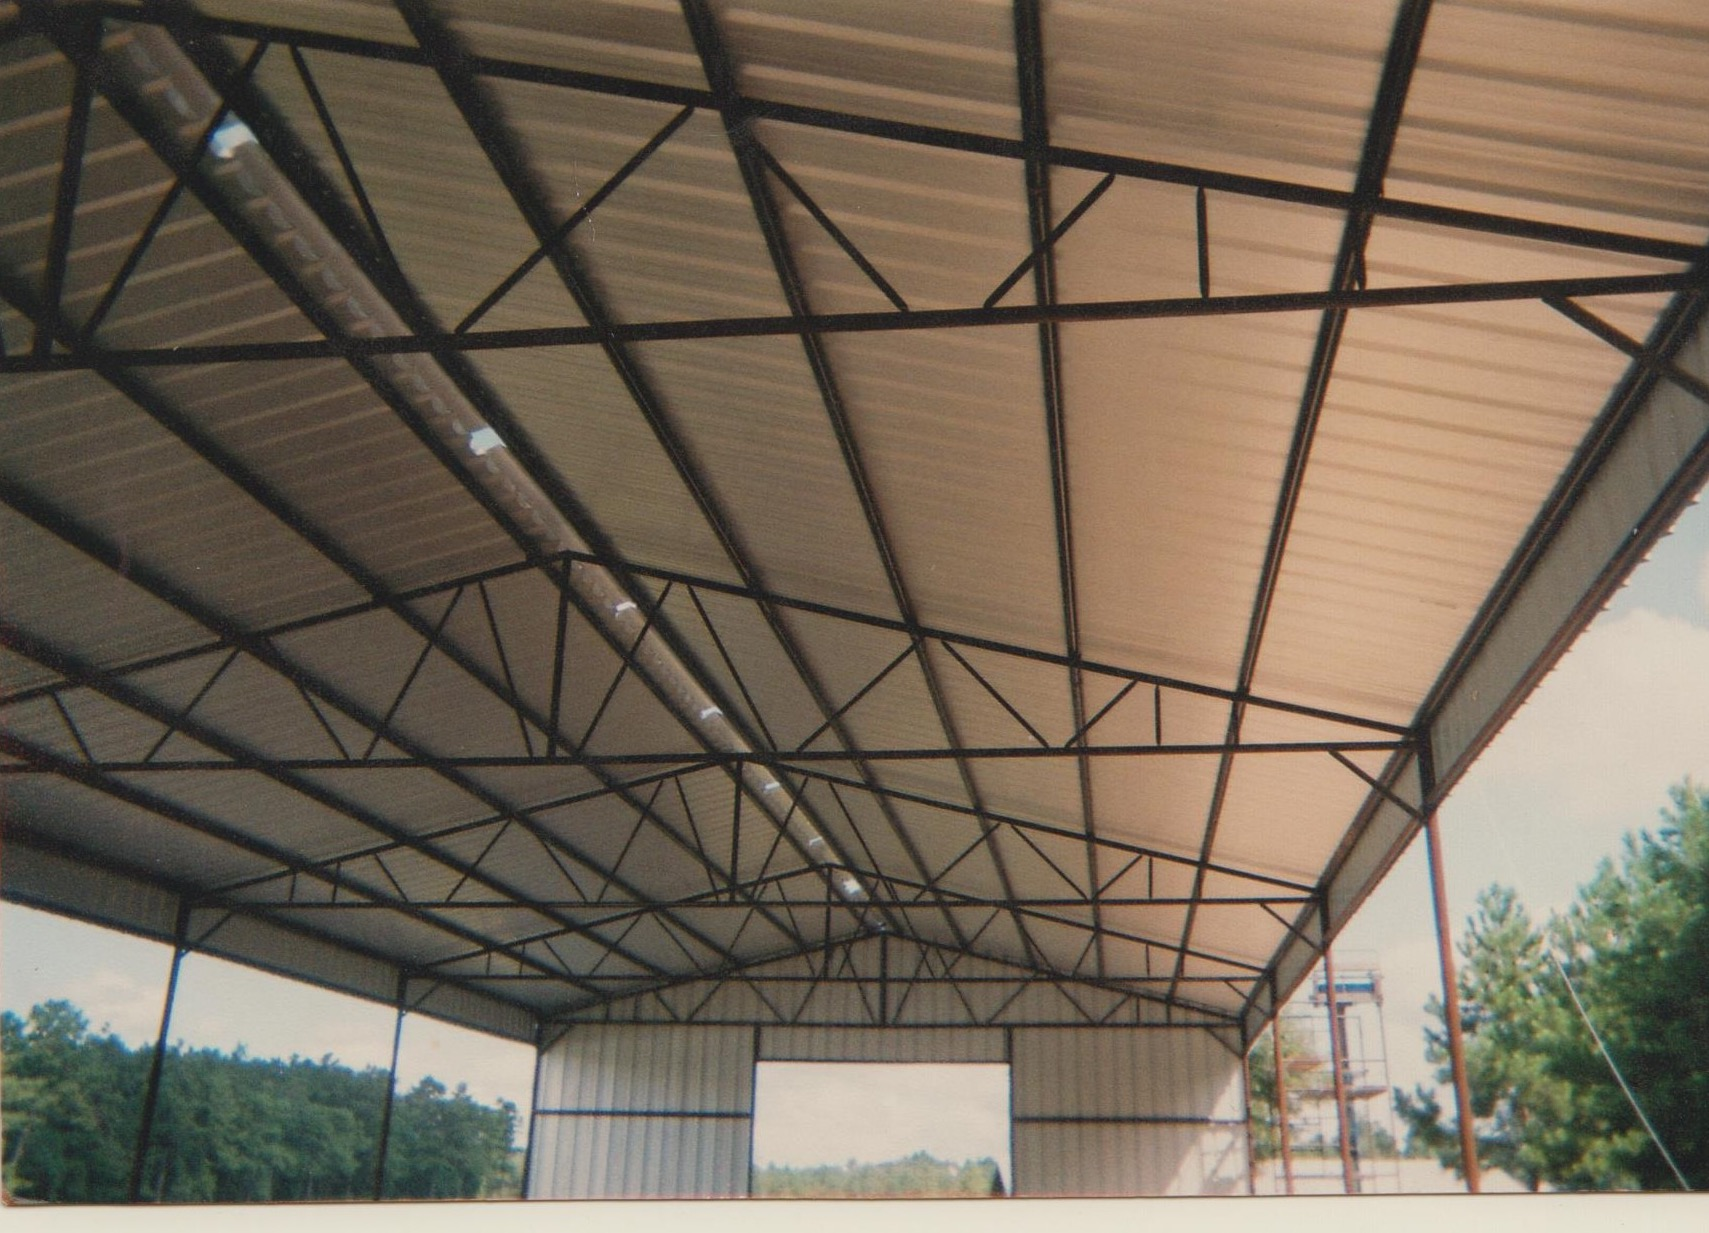 The pipe shop inc kentwood la 70444 products pole barns for Large pole barn